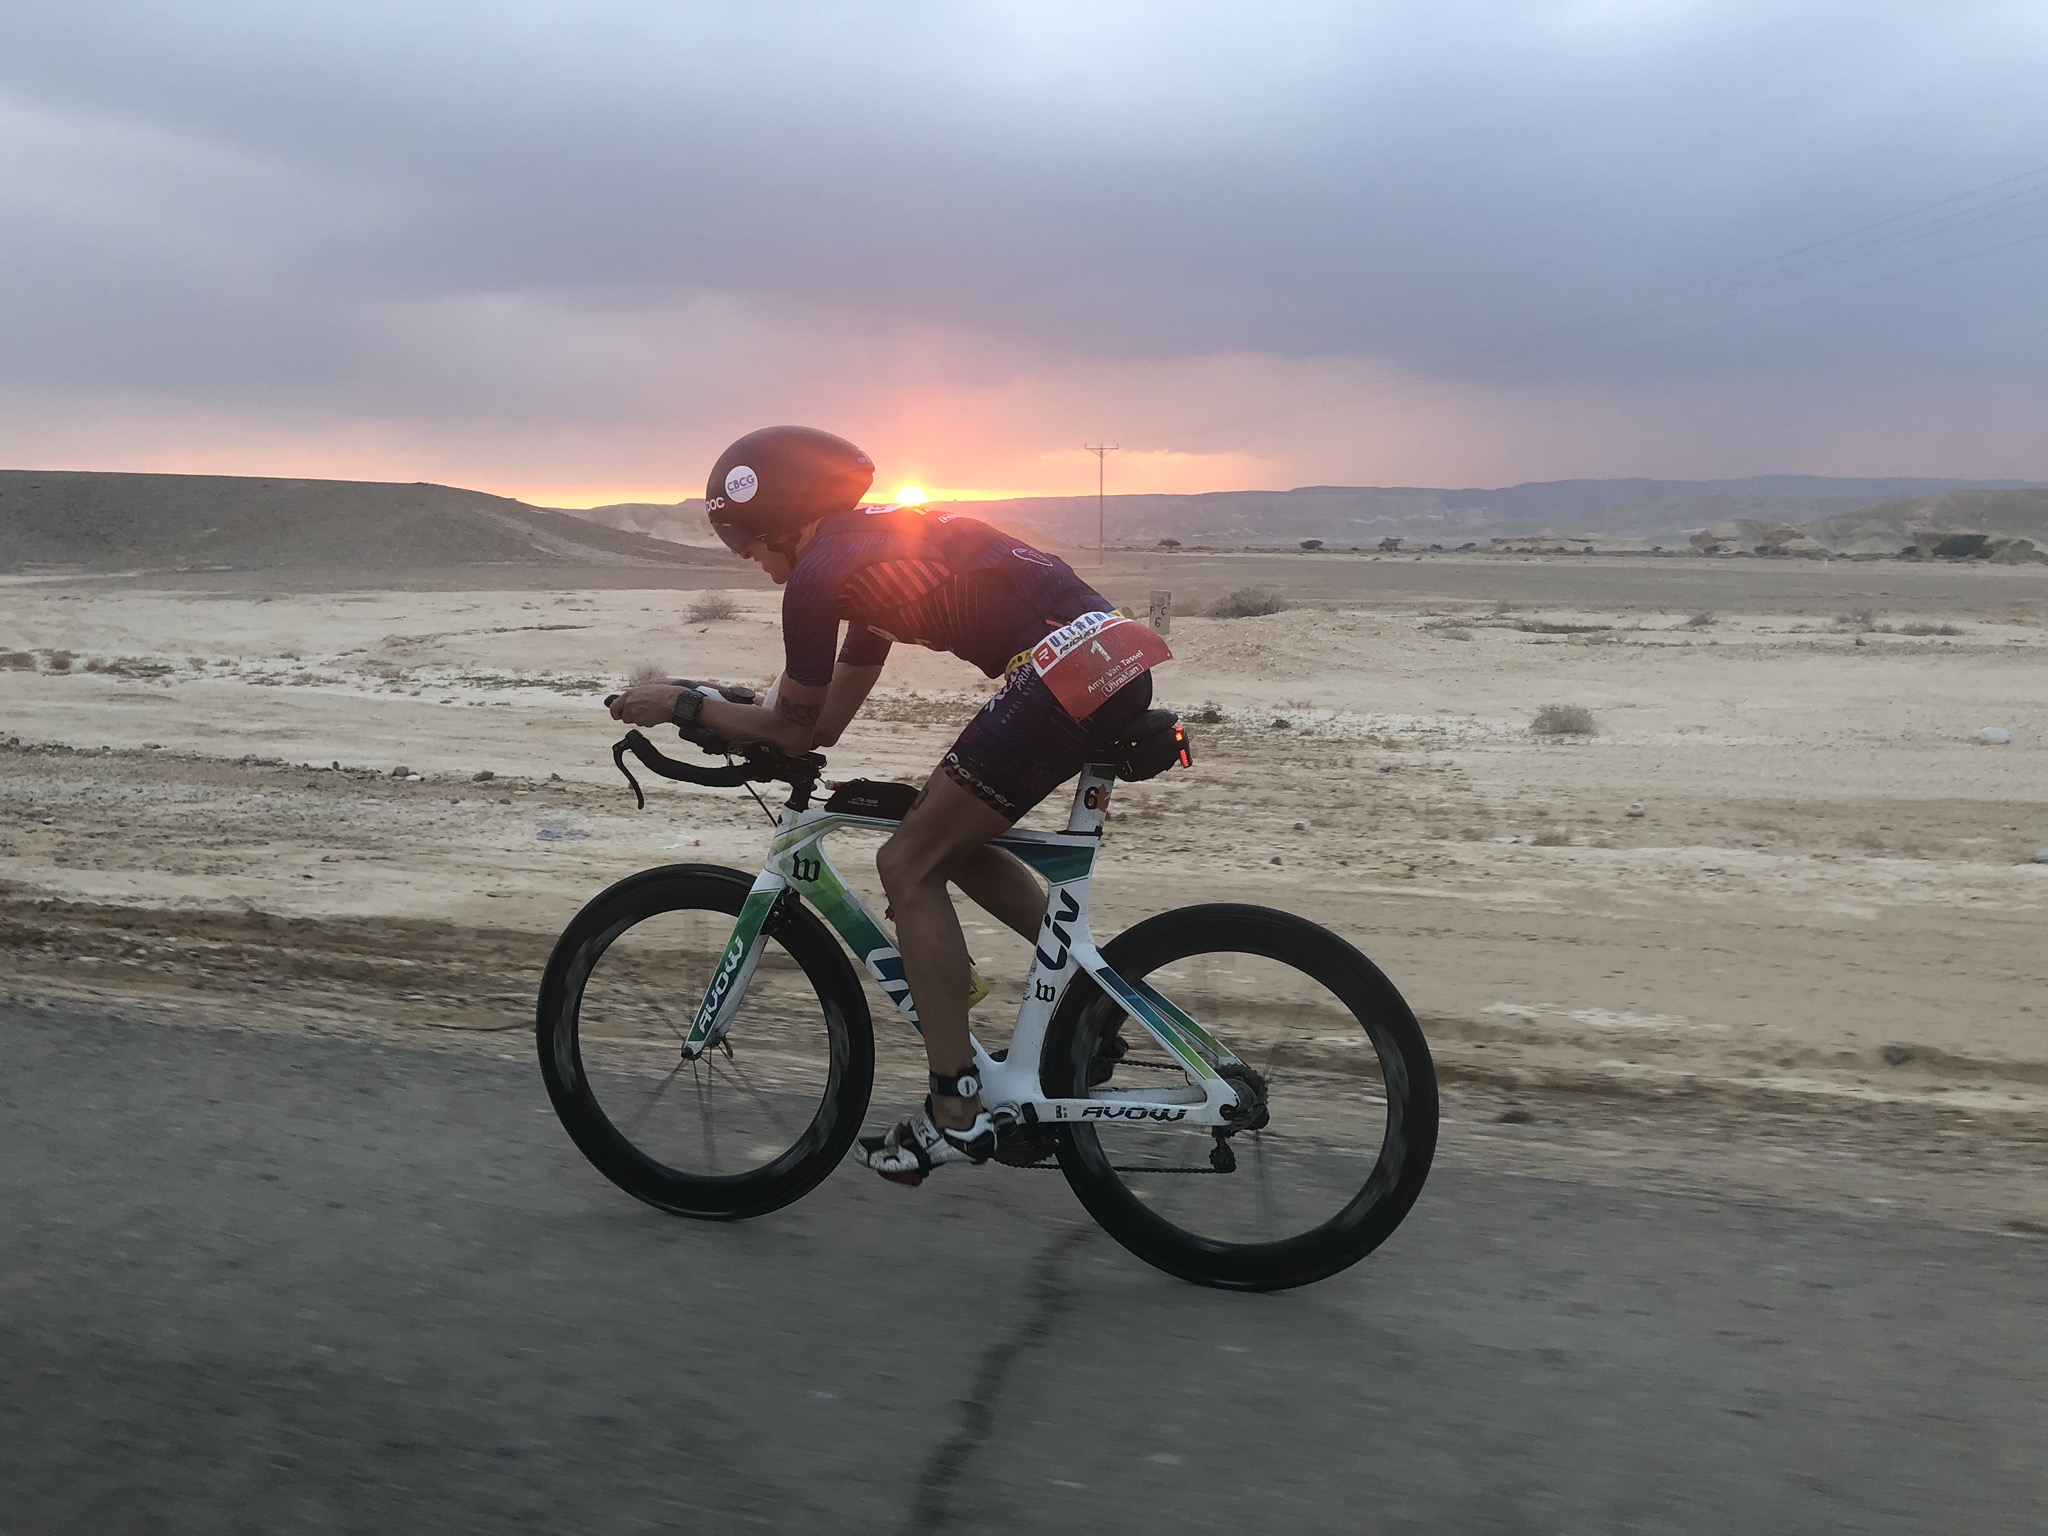 Coach_Terry_Wilson_Pursuit_of_The_Perfect_Race_Ultram_Isereal_Amy_VT_Overall_Winer_Bike_1.JPG